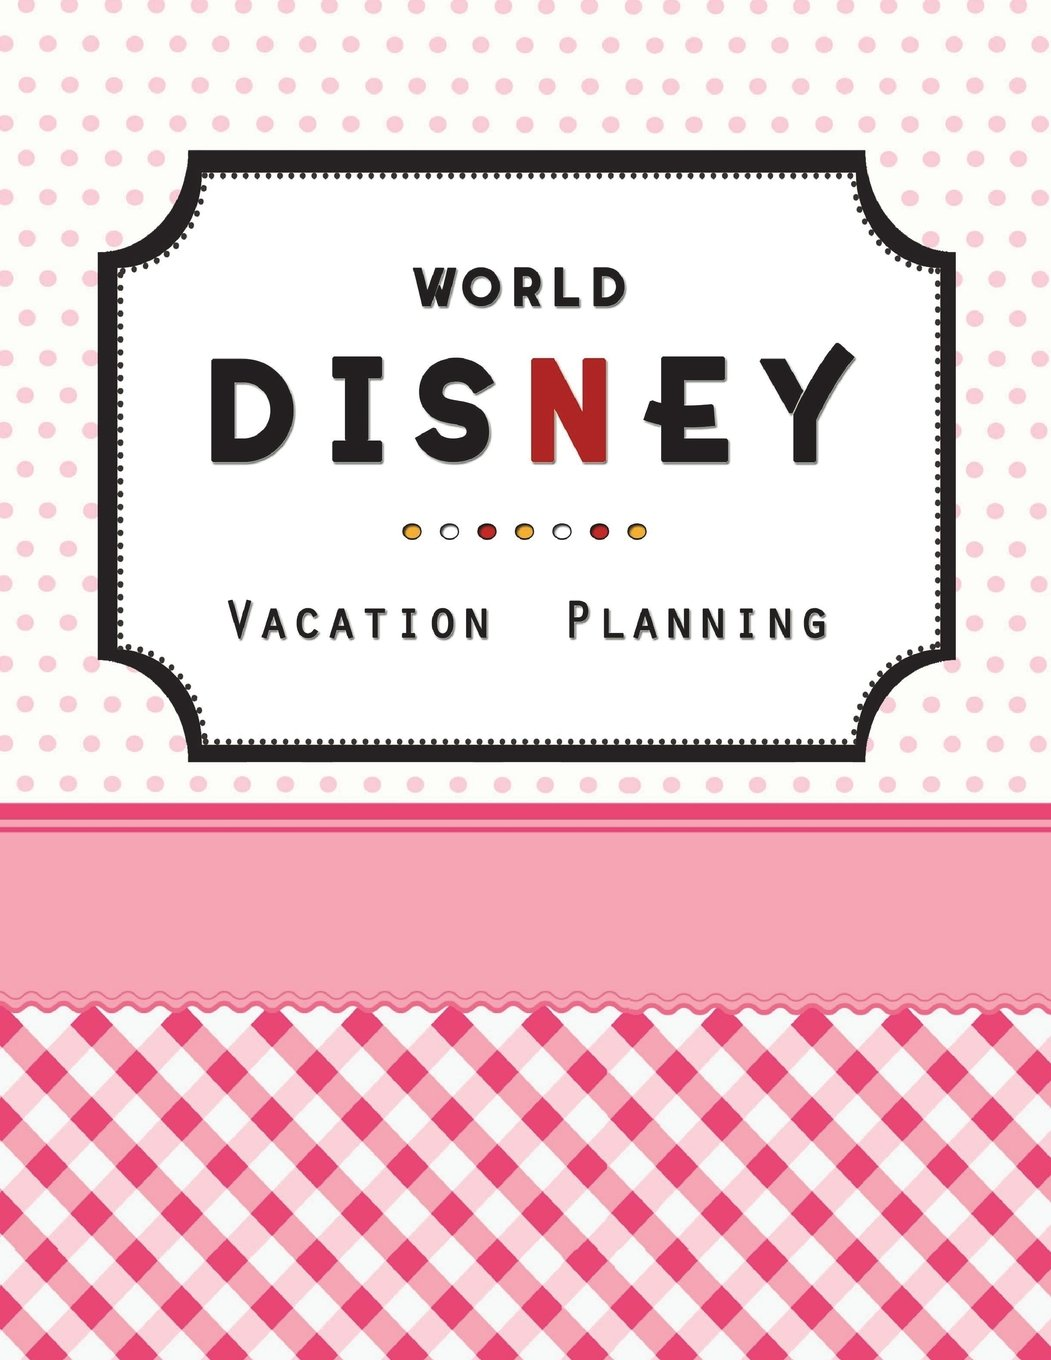 Disney World Vacation Planning: Disneyland, Disney Cruise ...